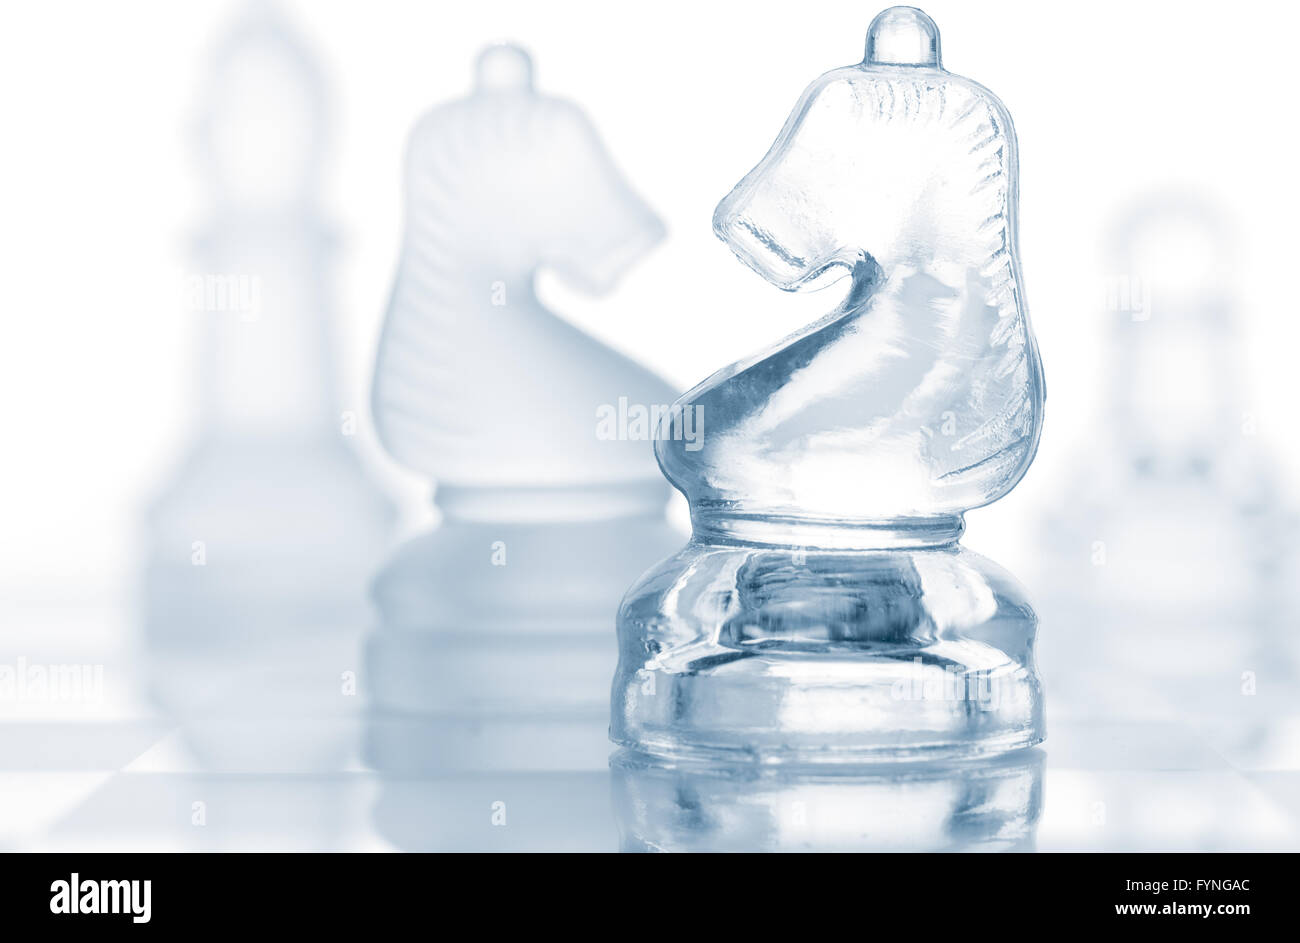 transparent glass chess pieces isolated on white - Stock Image